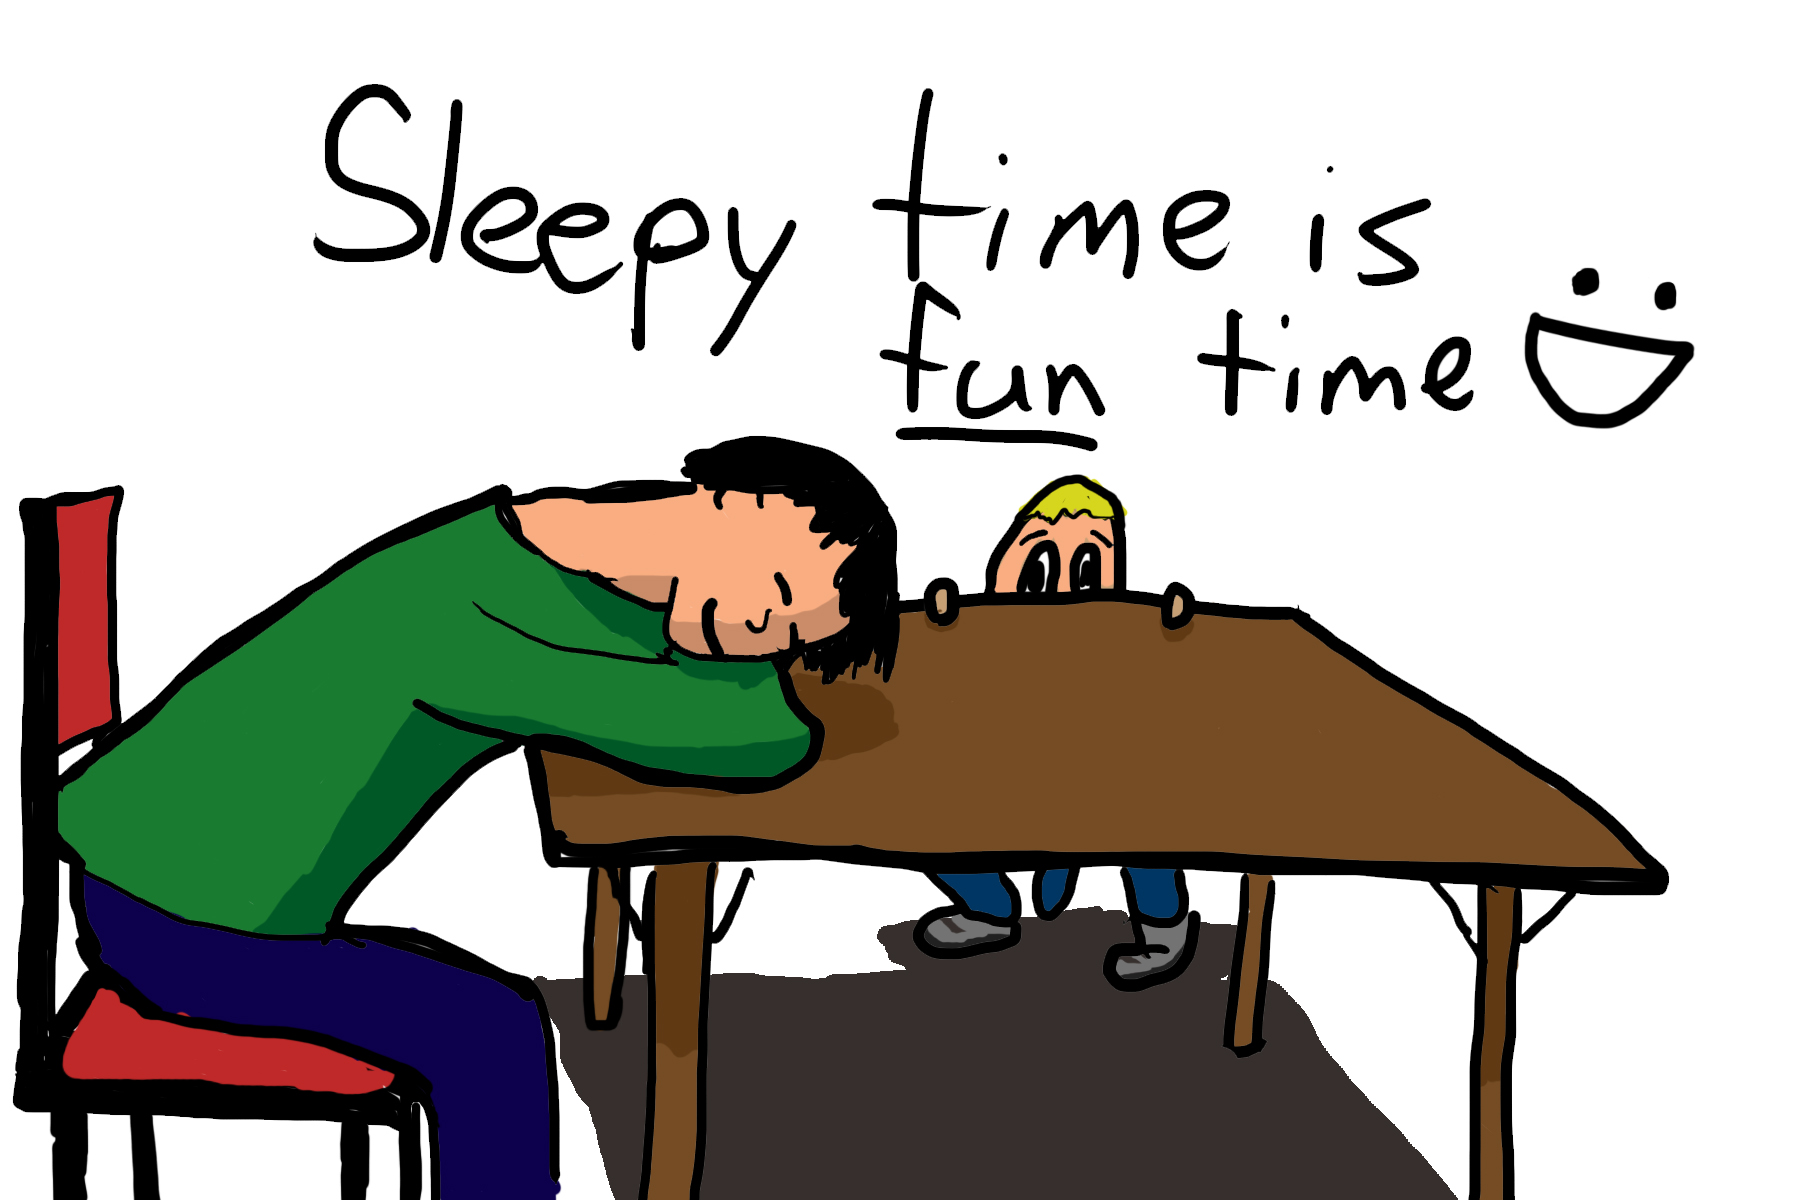 Sleepy Fun Time